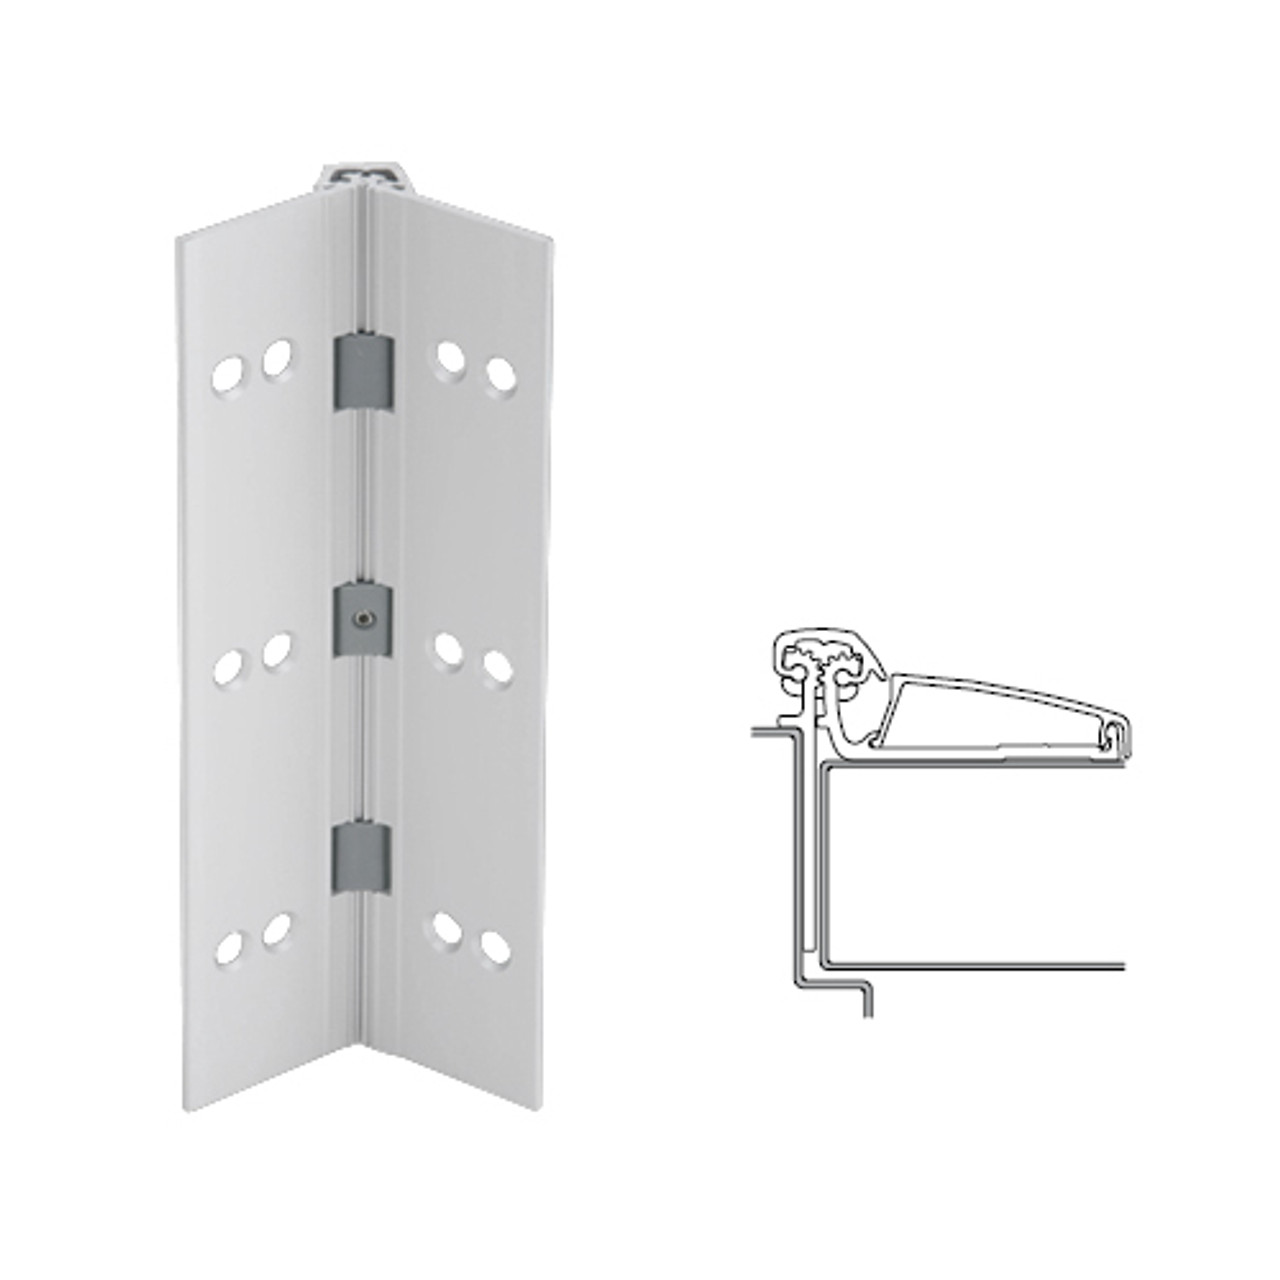 046XY-US28-85-TF IVES Adjustable Half Surface Continuous Geared Hinges with Thread Forming Screws in Satin Aluminum